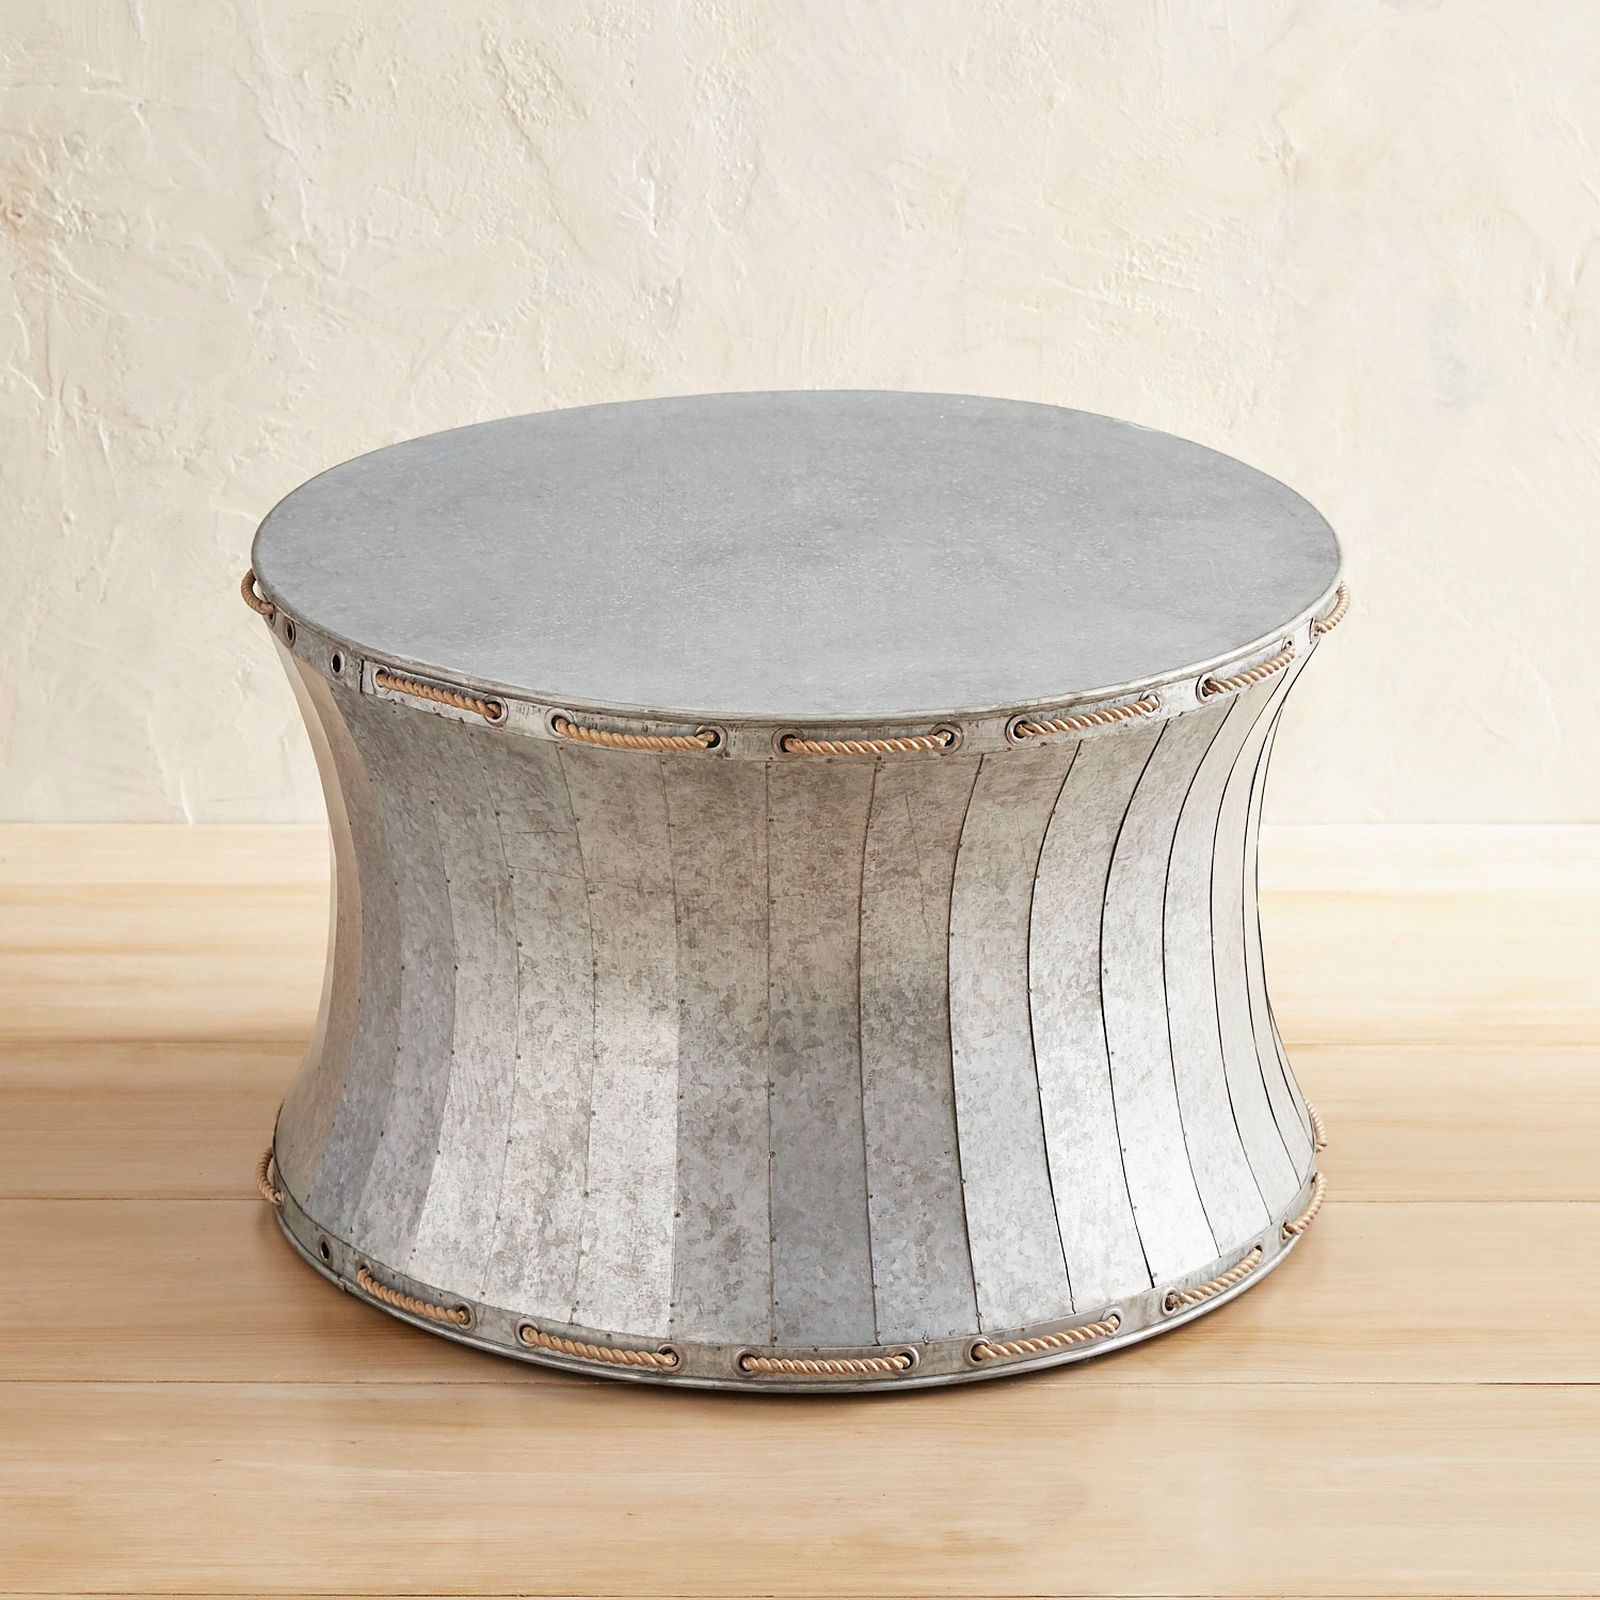 galvanized drum coffee table patio outdoor metal accent pier imports modern bar iron side garden set corner foyer round brass armchair abbyson furniture ikea room ideas west elm